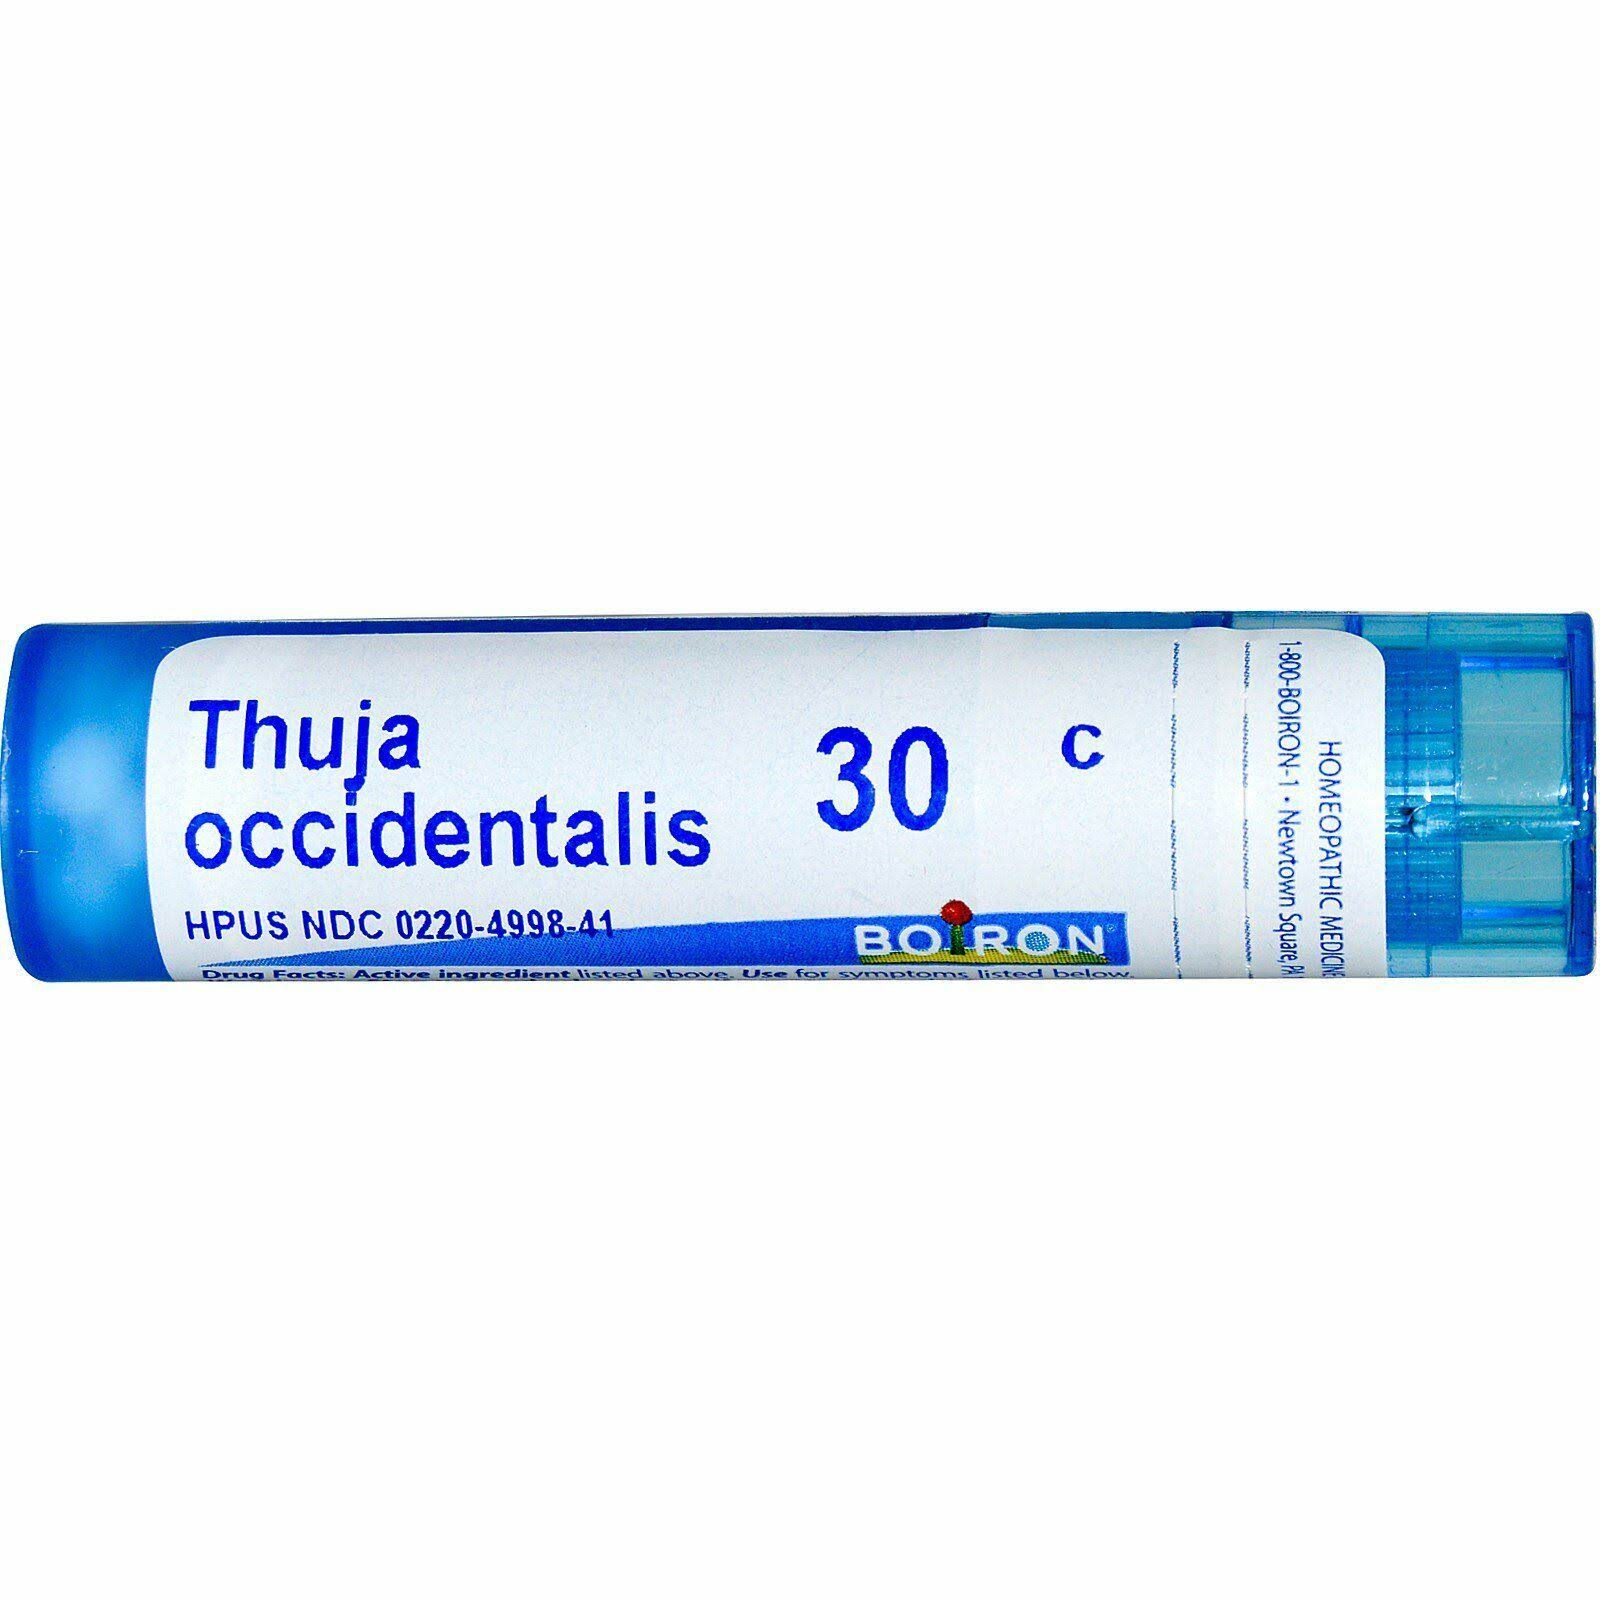 Boiron - Thuja Occidentalis 30C 80 Pellets